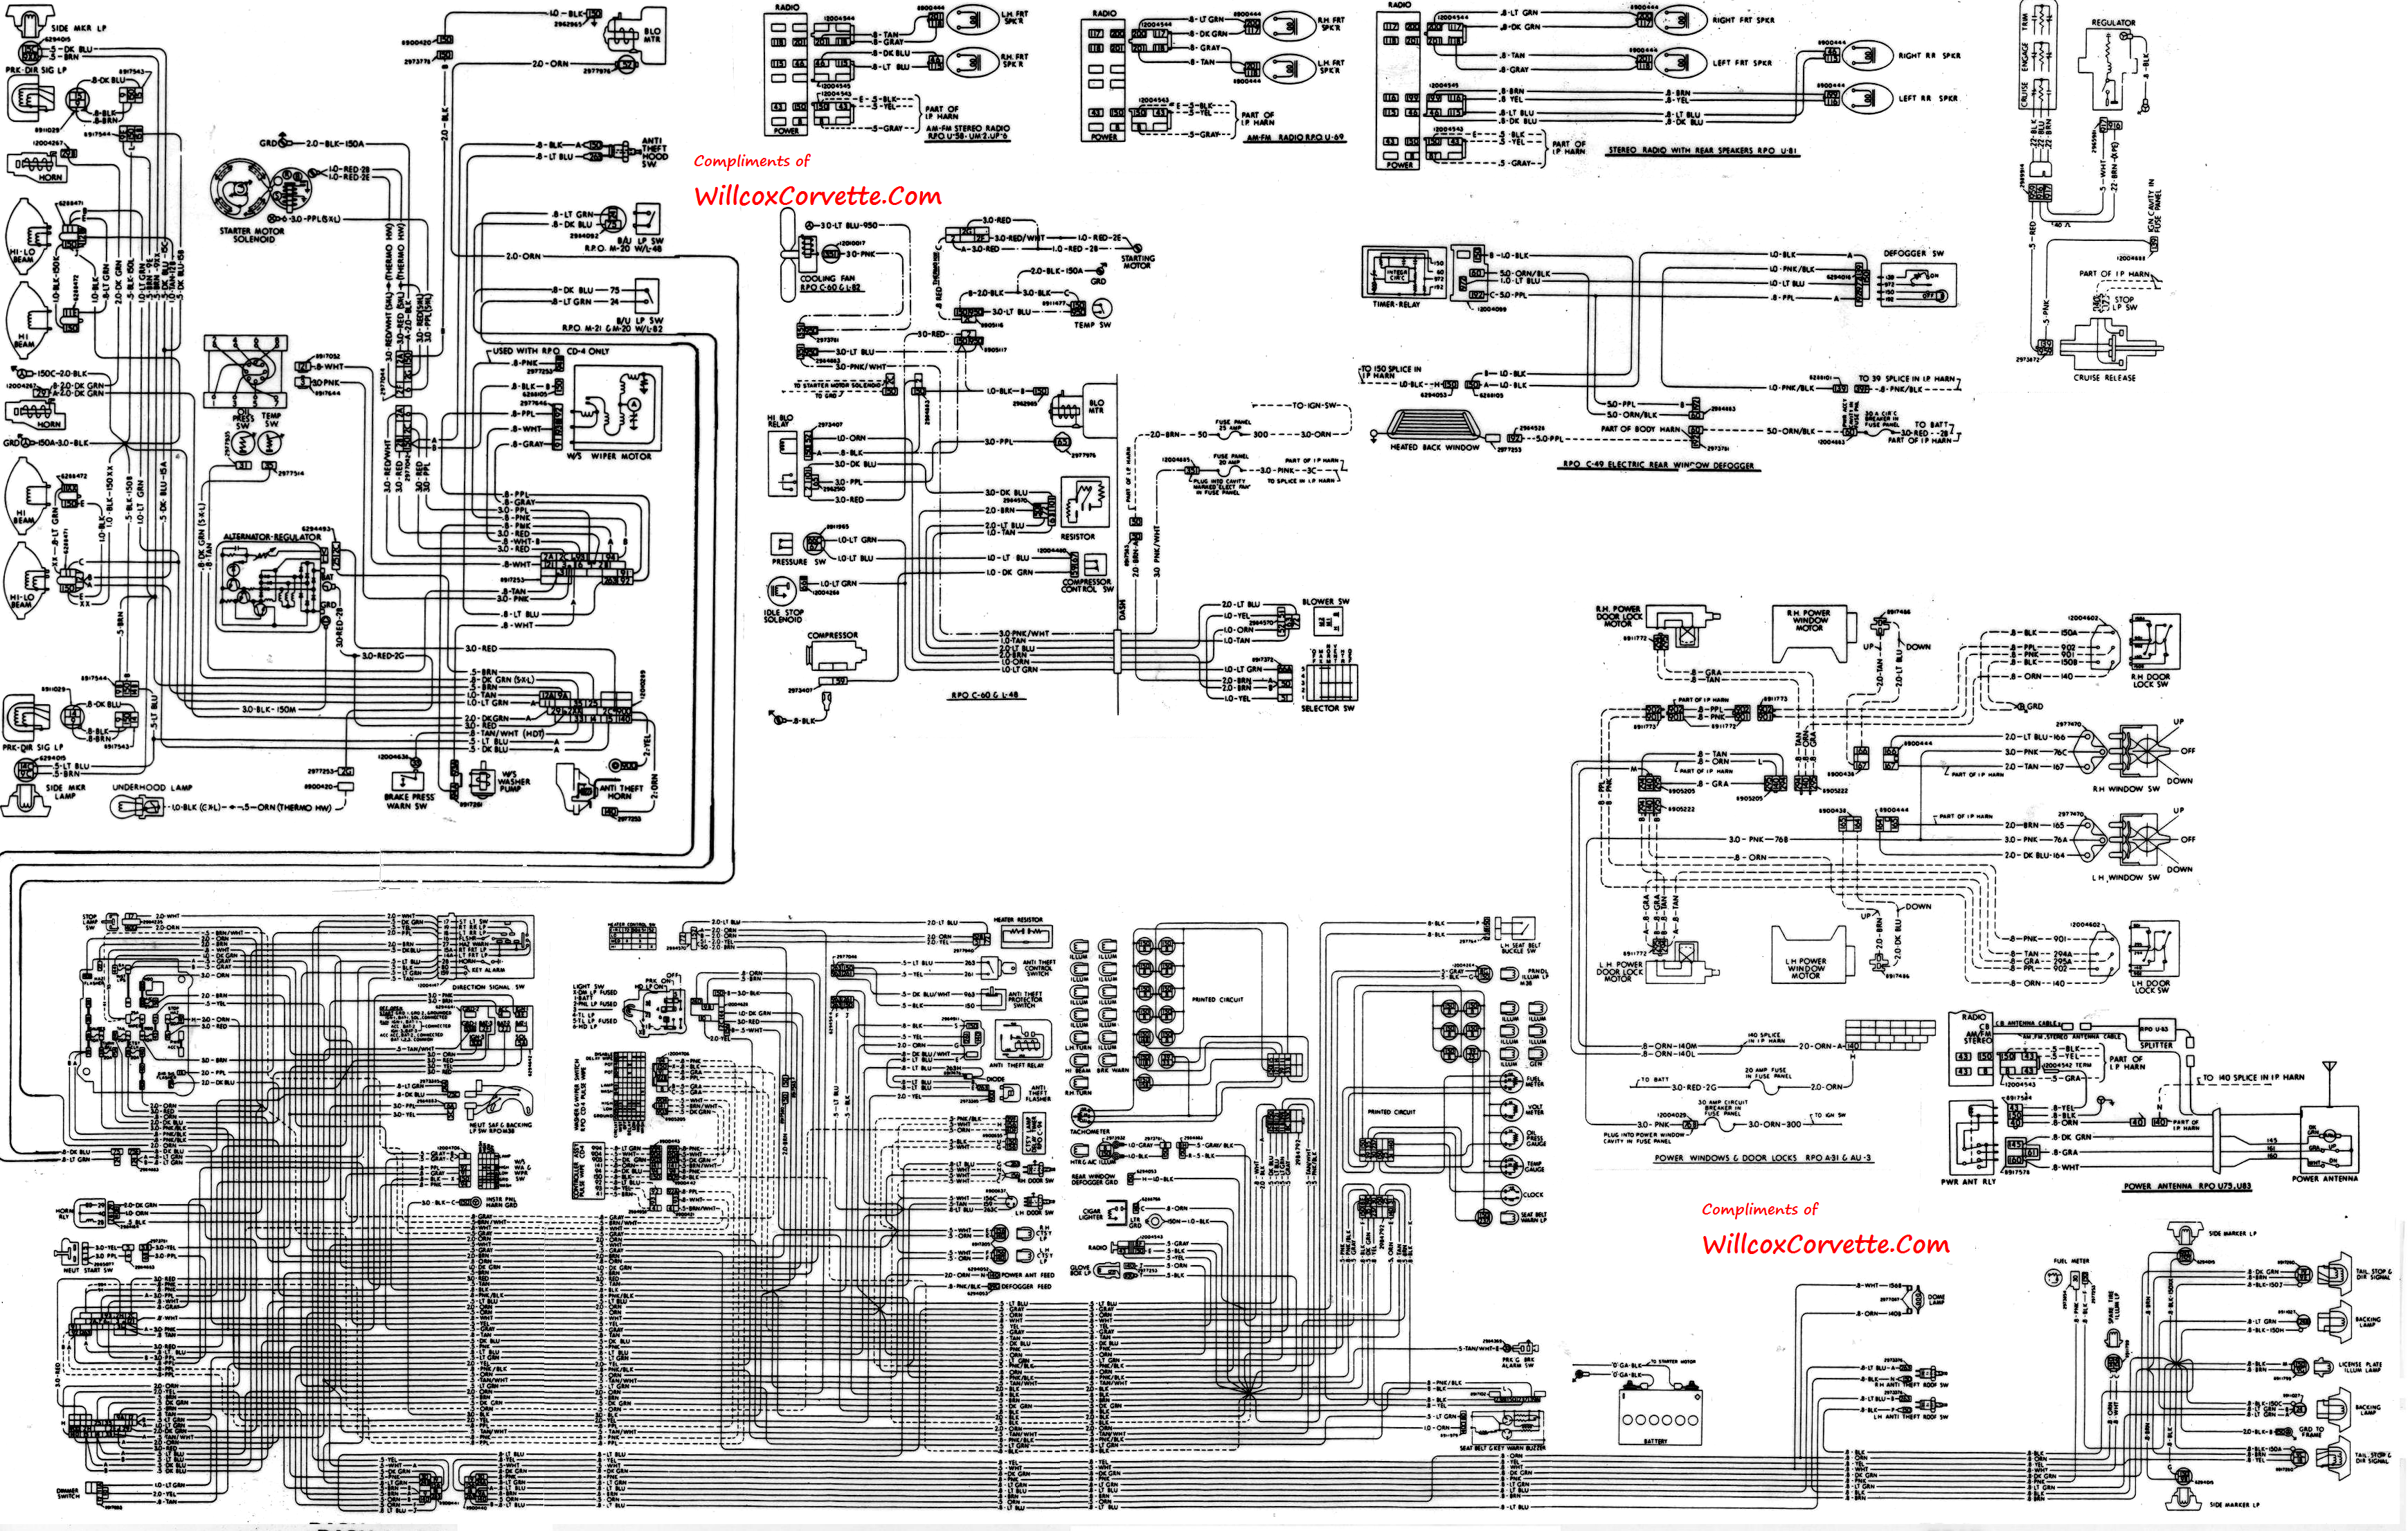 1979 wire diagram 1979 corvette tracer wiring diagram tracer schematic willcox 1960 corvette wiring diagram at panicattacktreatment.co